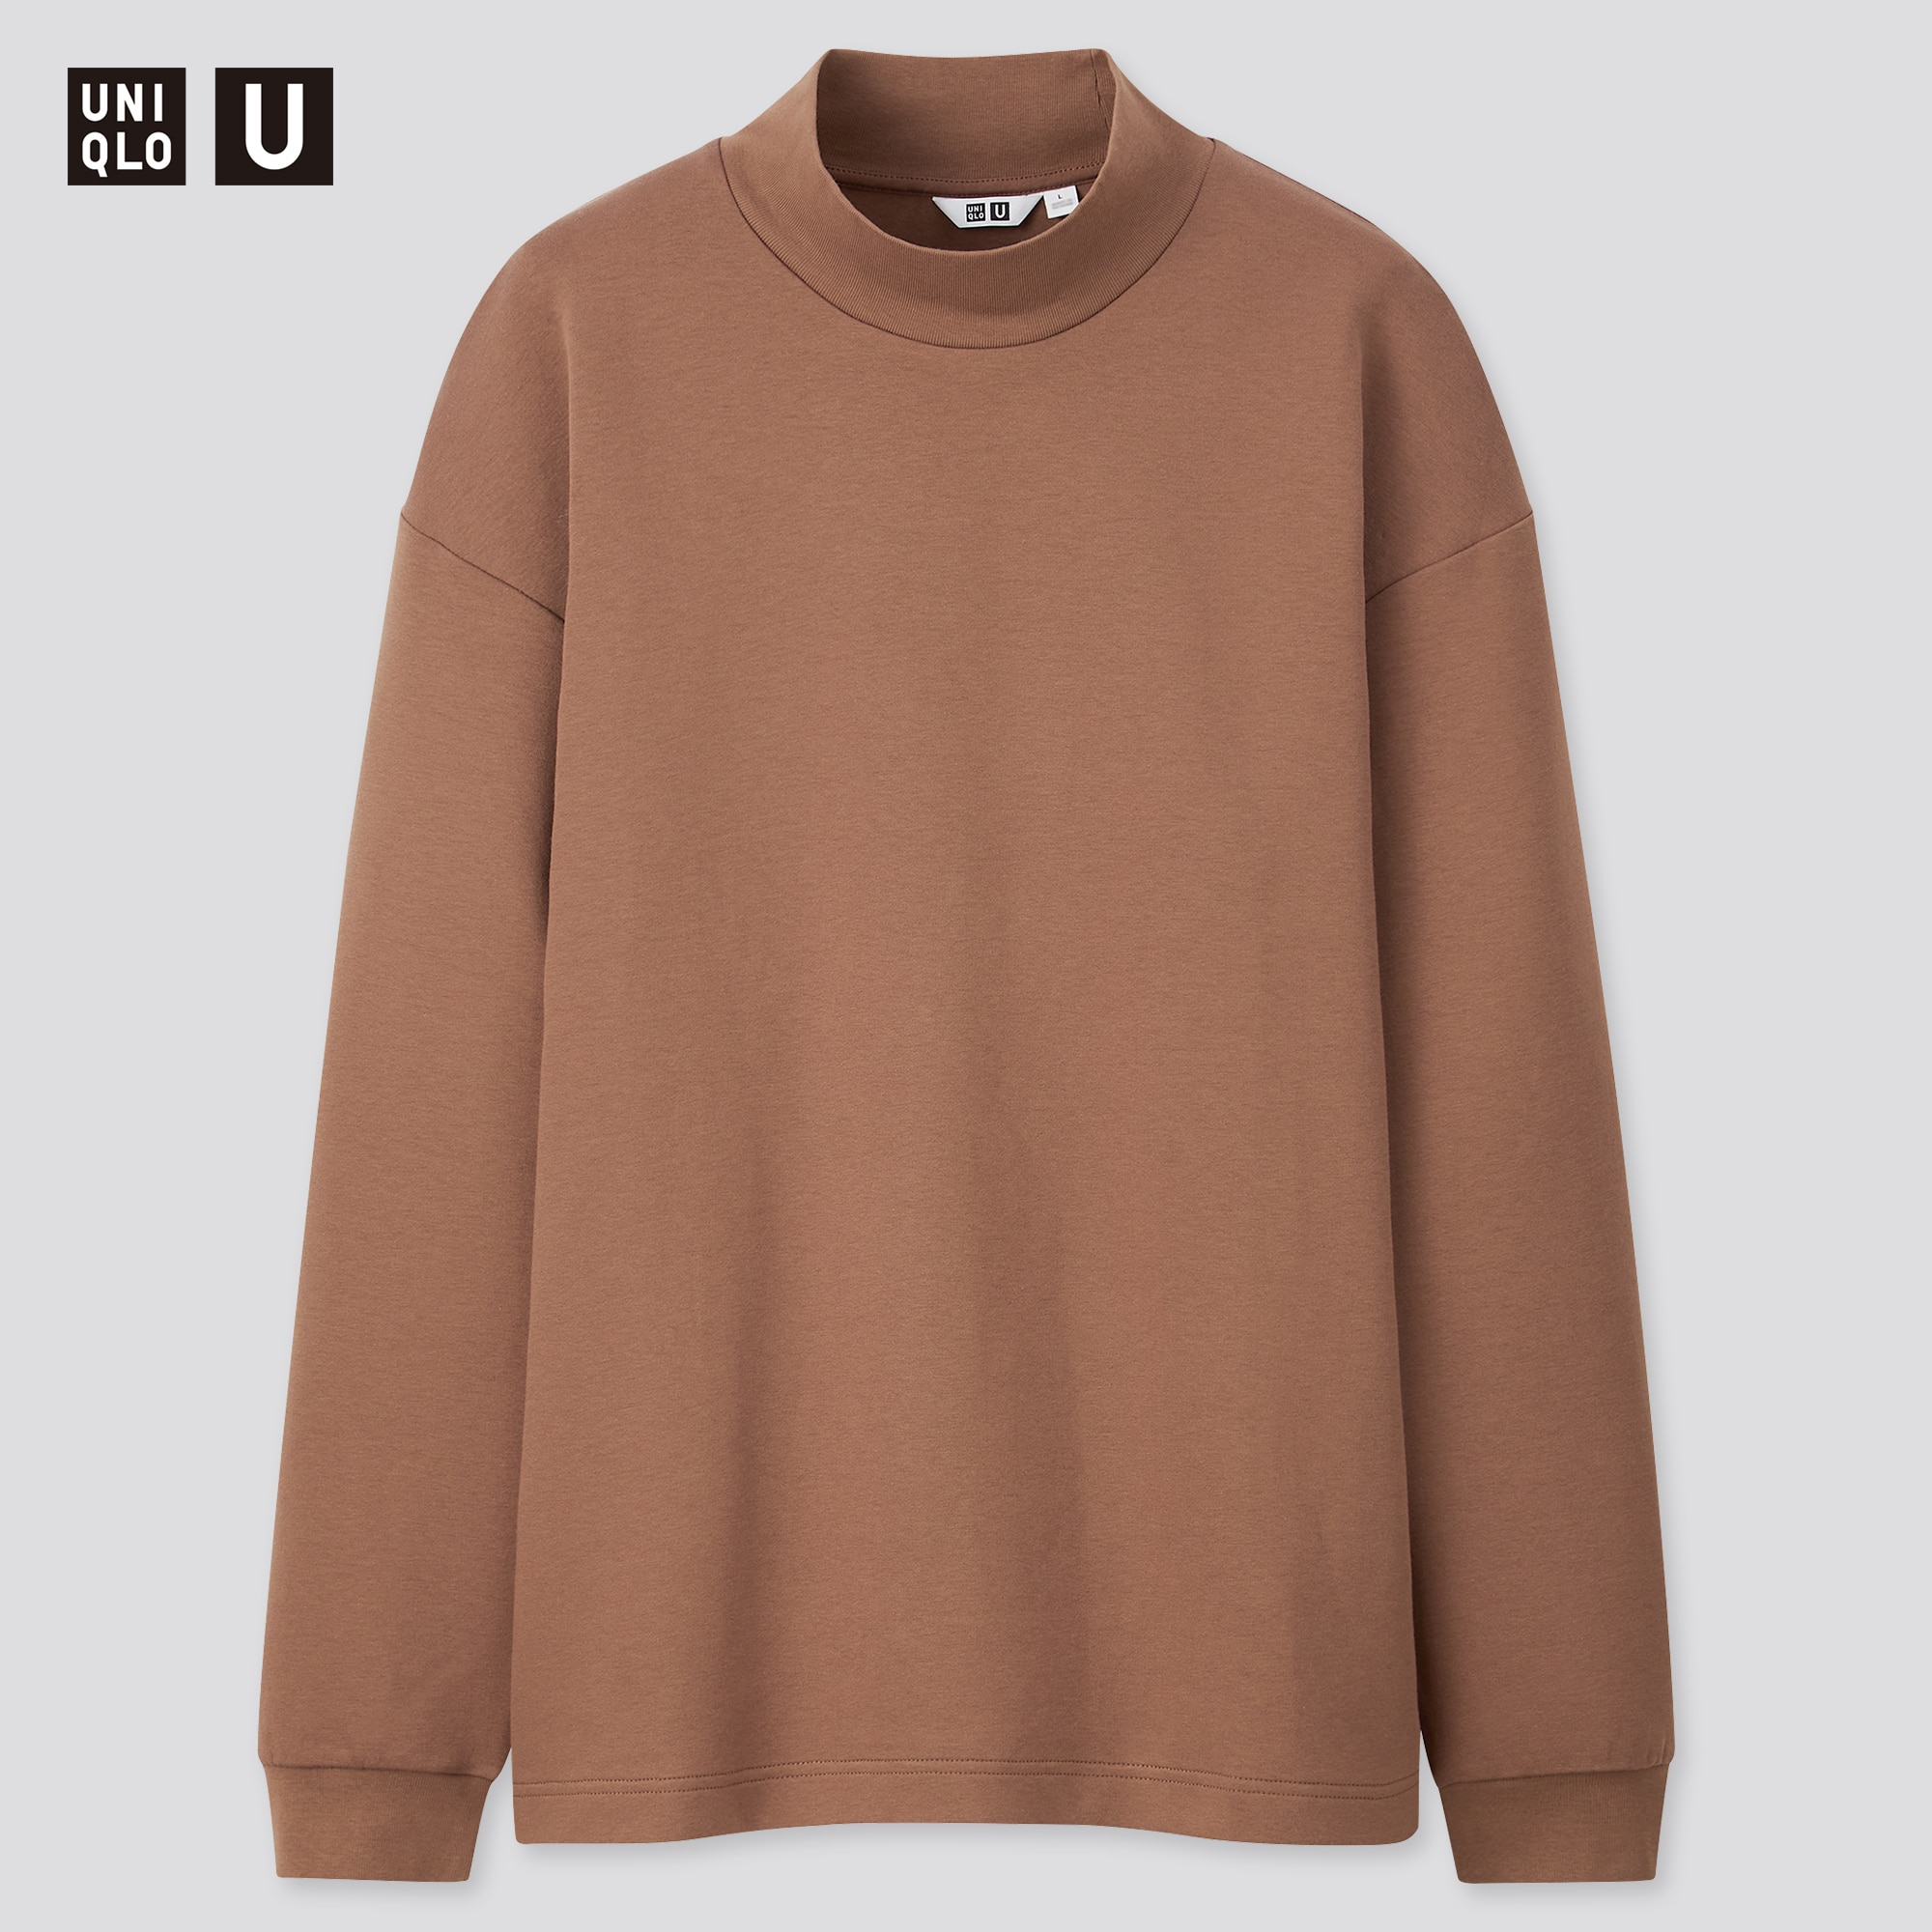 MEN U MIDDLE GAUGE MOCK NECK LONG SLEEVE SWEATER | UNIQLO US